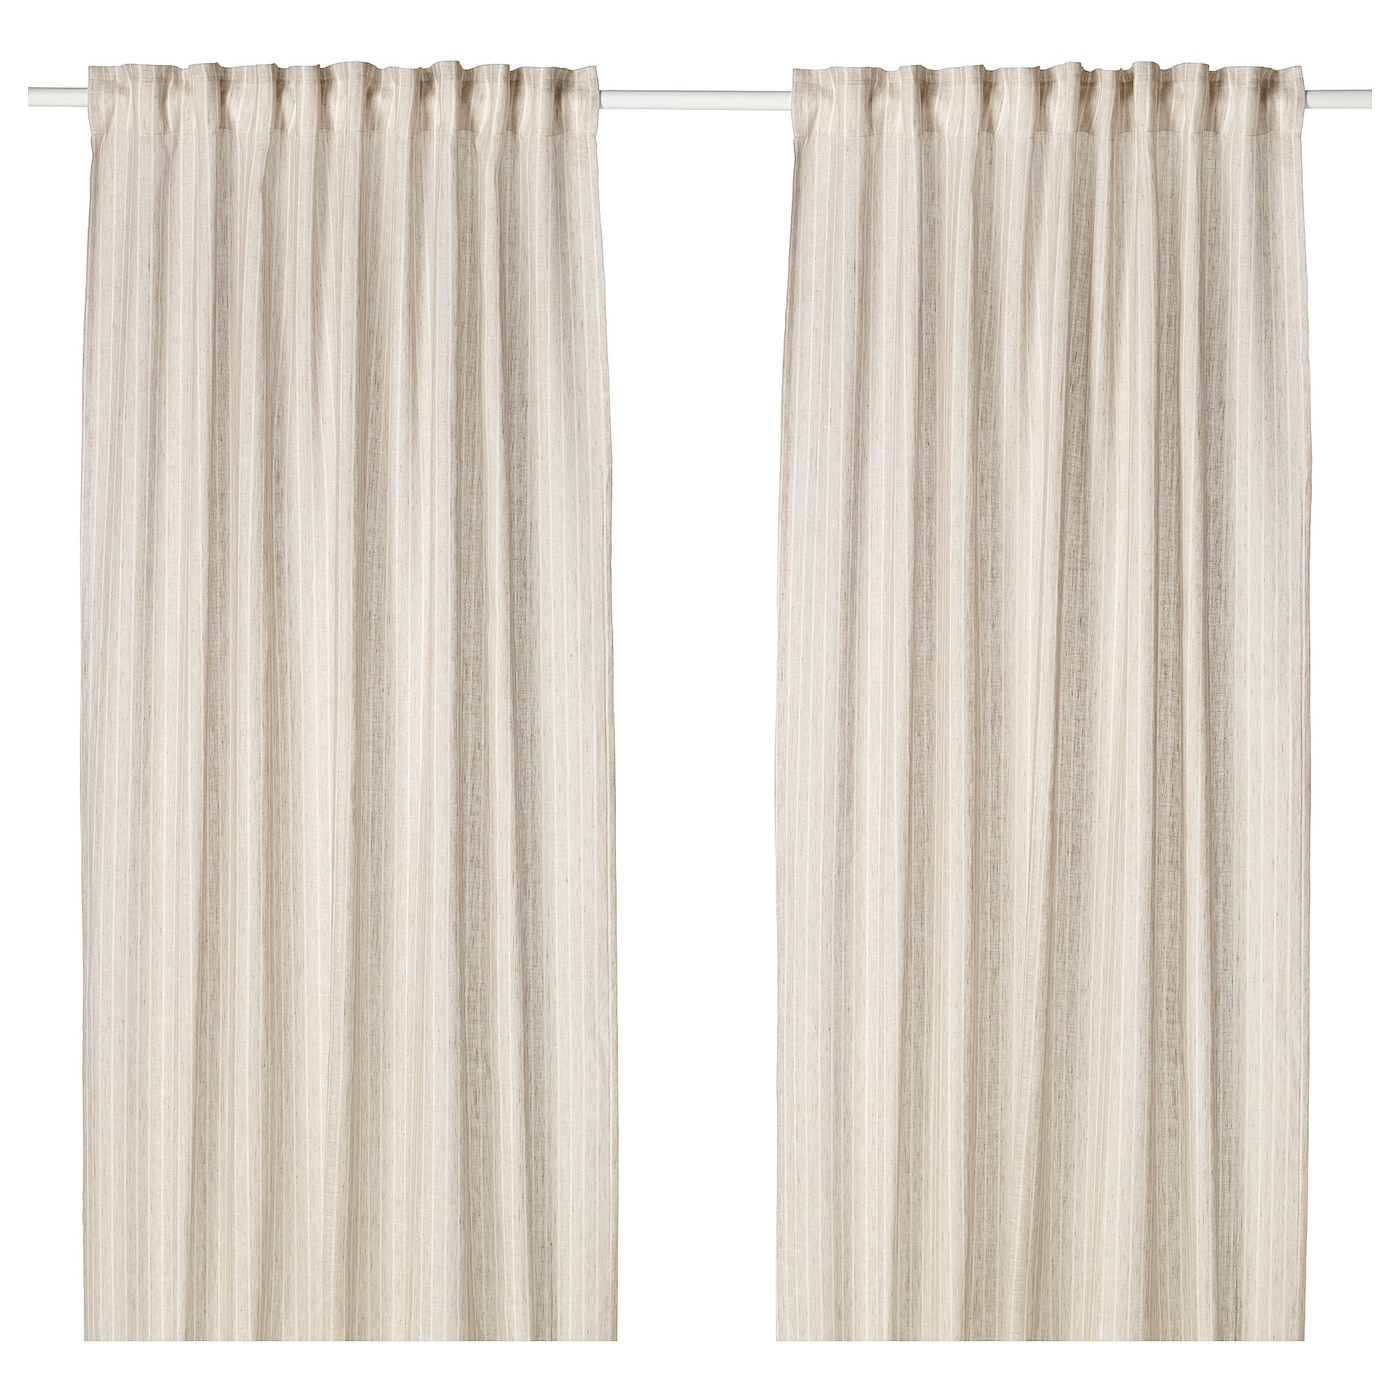 drapes top com x dp sari home drape piece tie white amazon sheer curtain kitchen panel silver